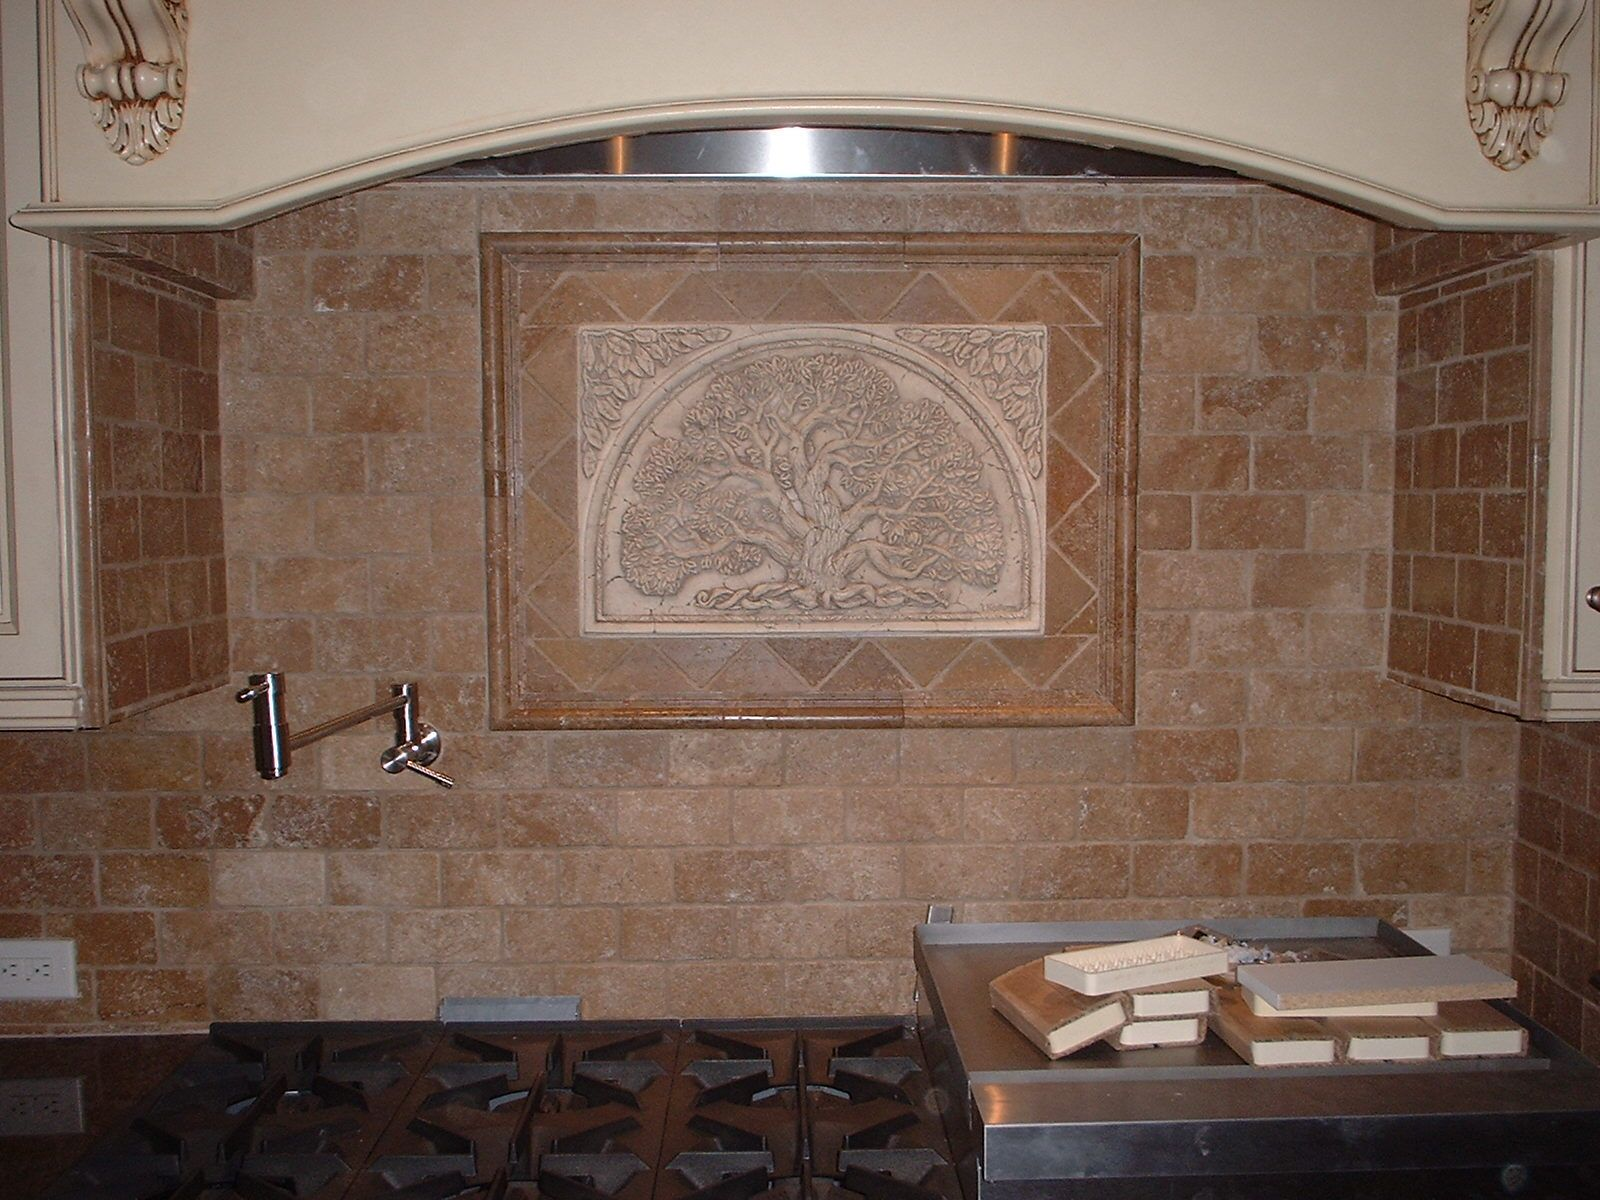 Wallpaper Kitchen Backsplash Ideas Backsplash Designs Pictures Download Wallpaper Tile